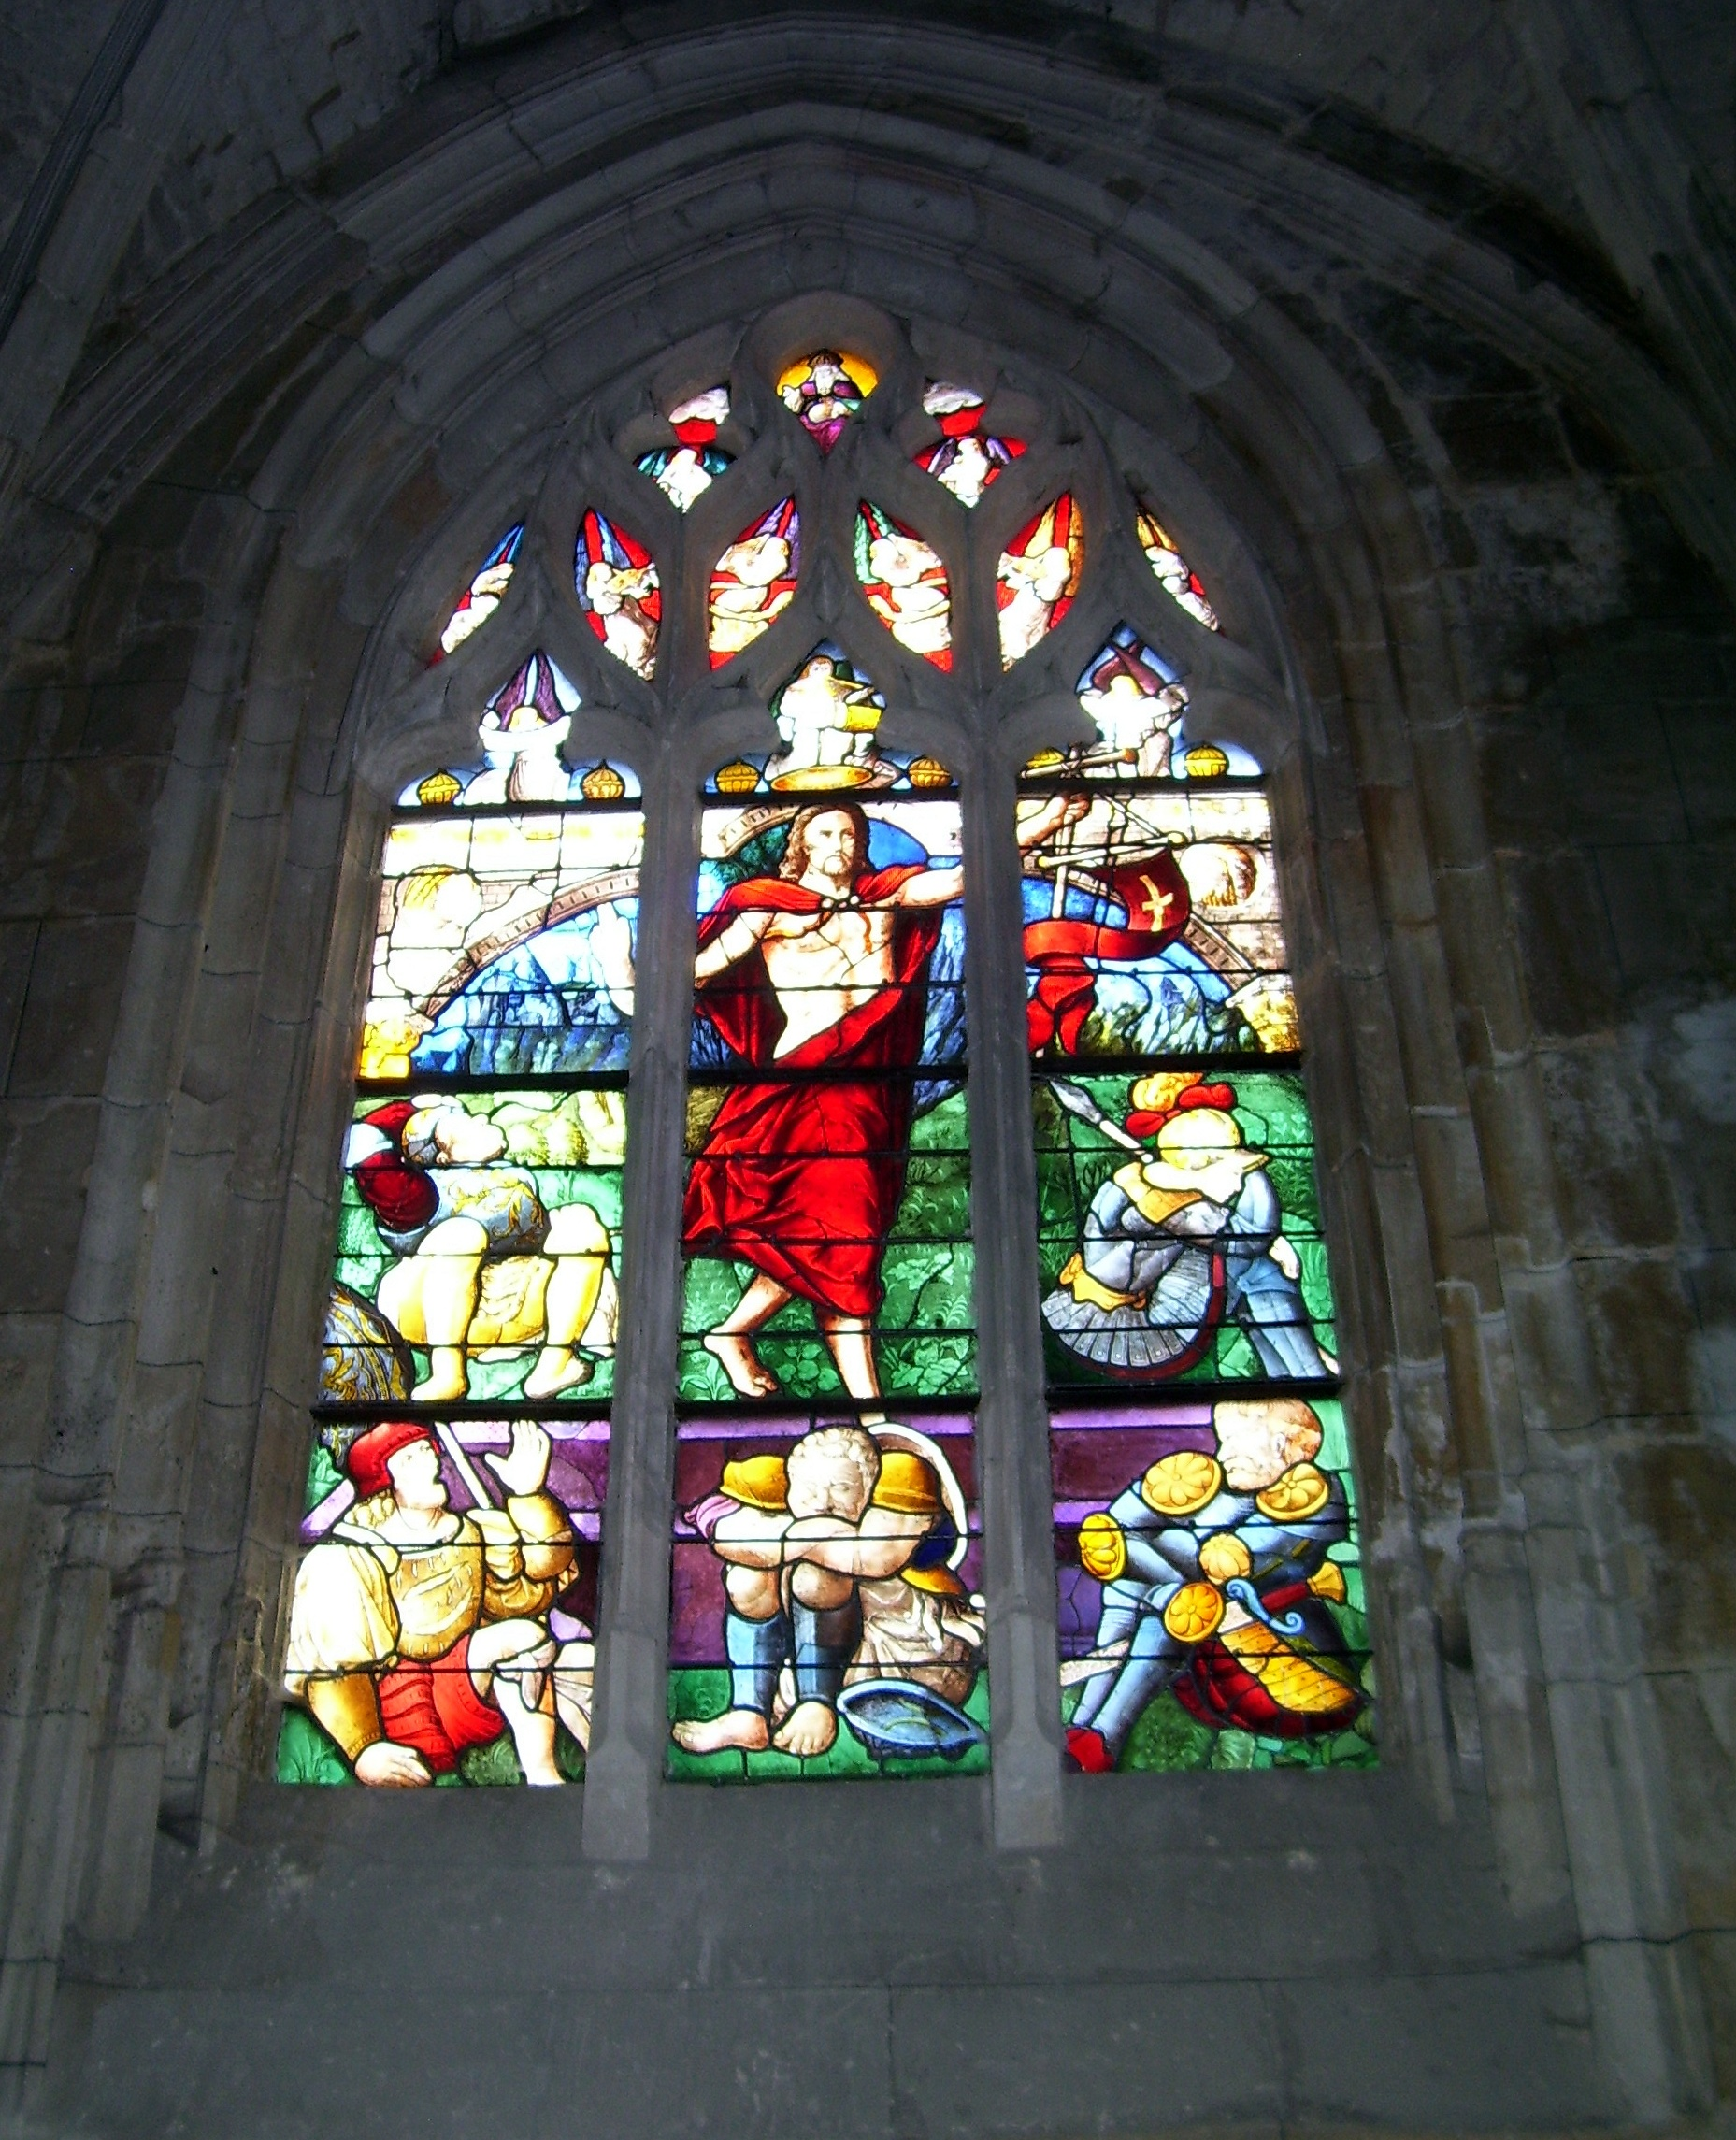 stained-glass church windows, kirchenfenster, vitrail